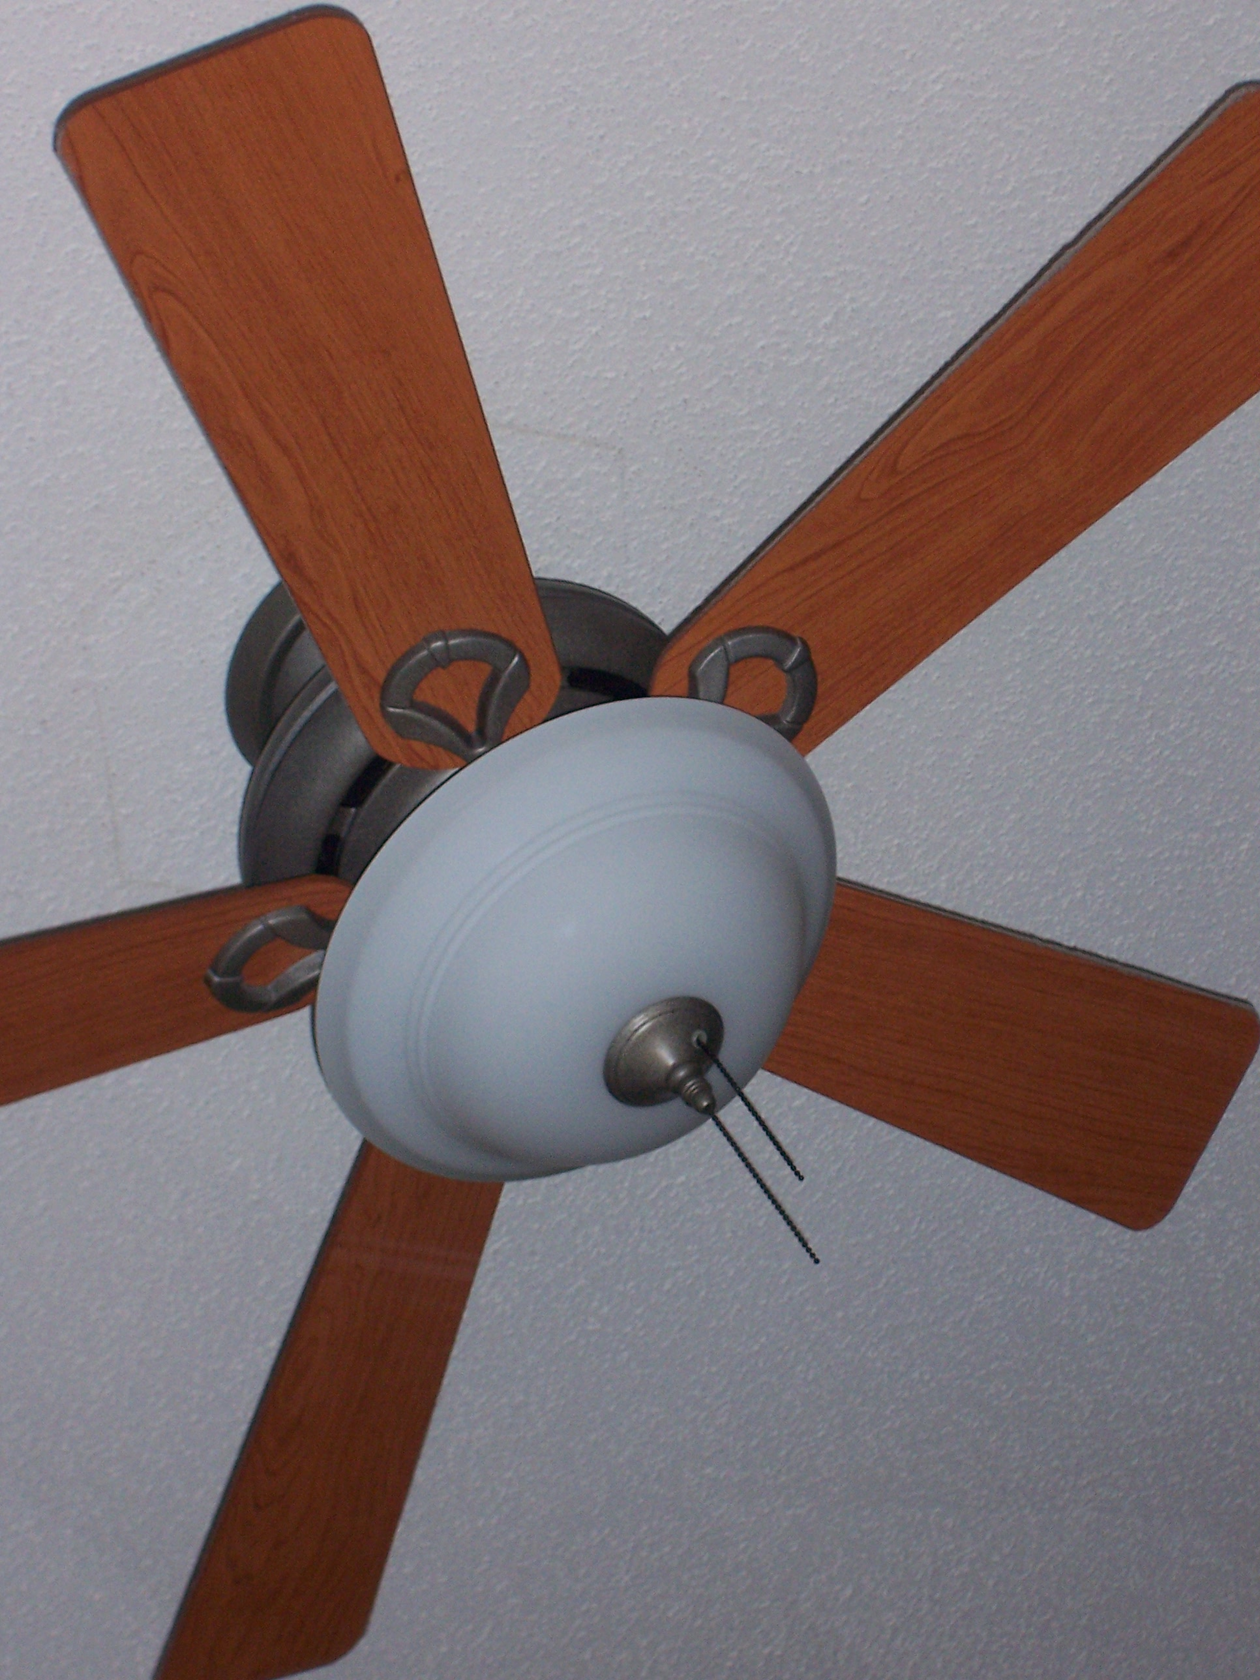 File:Ceiling fan.png - Wikimedia Commons